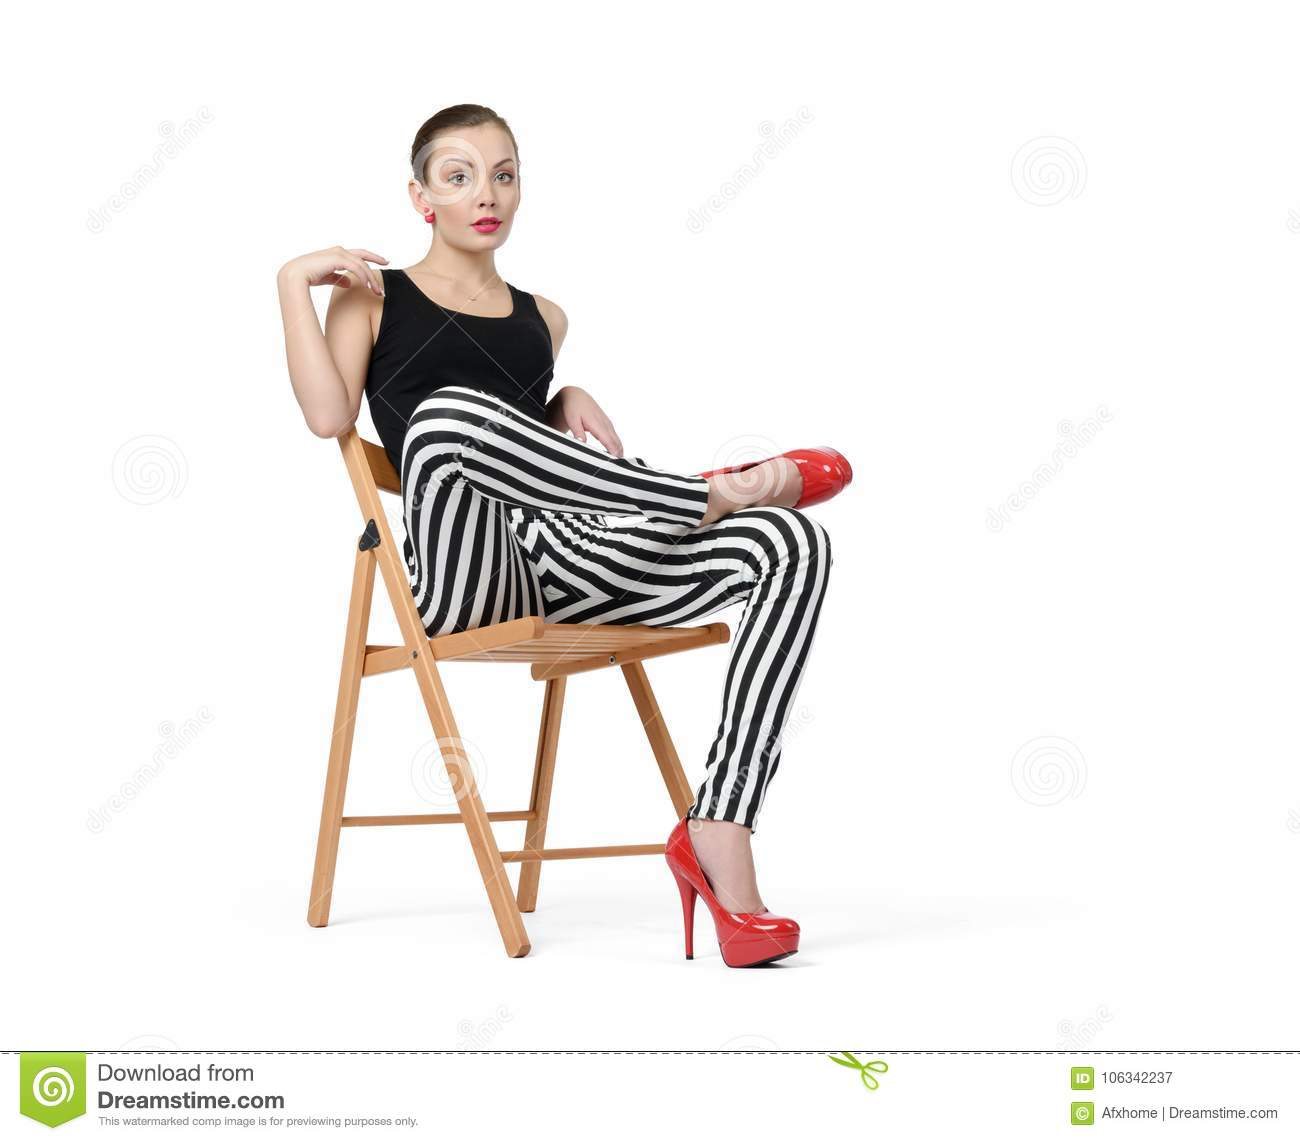 Chair Pants Nice Young Woman In Striped Pants And Red Heels Sitting In Chair